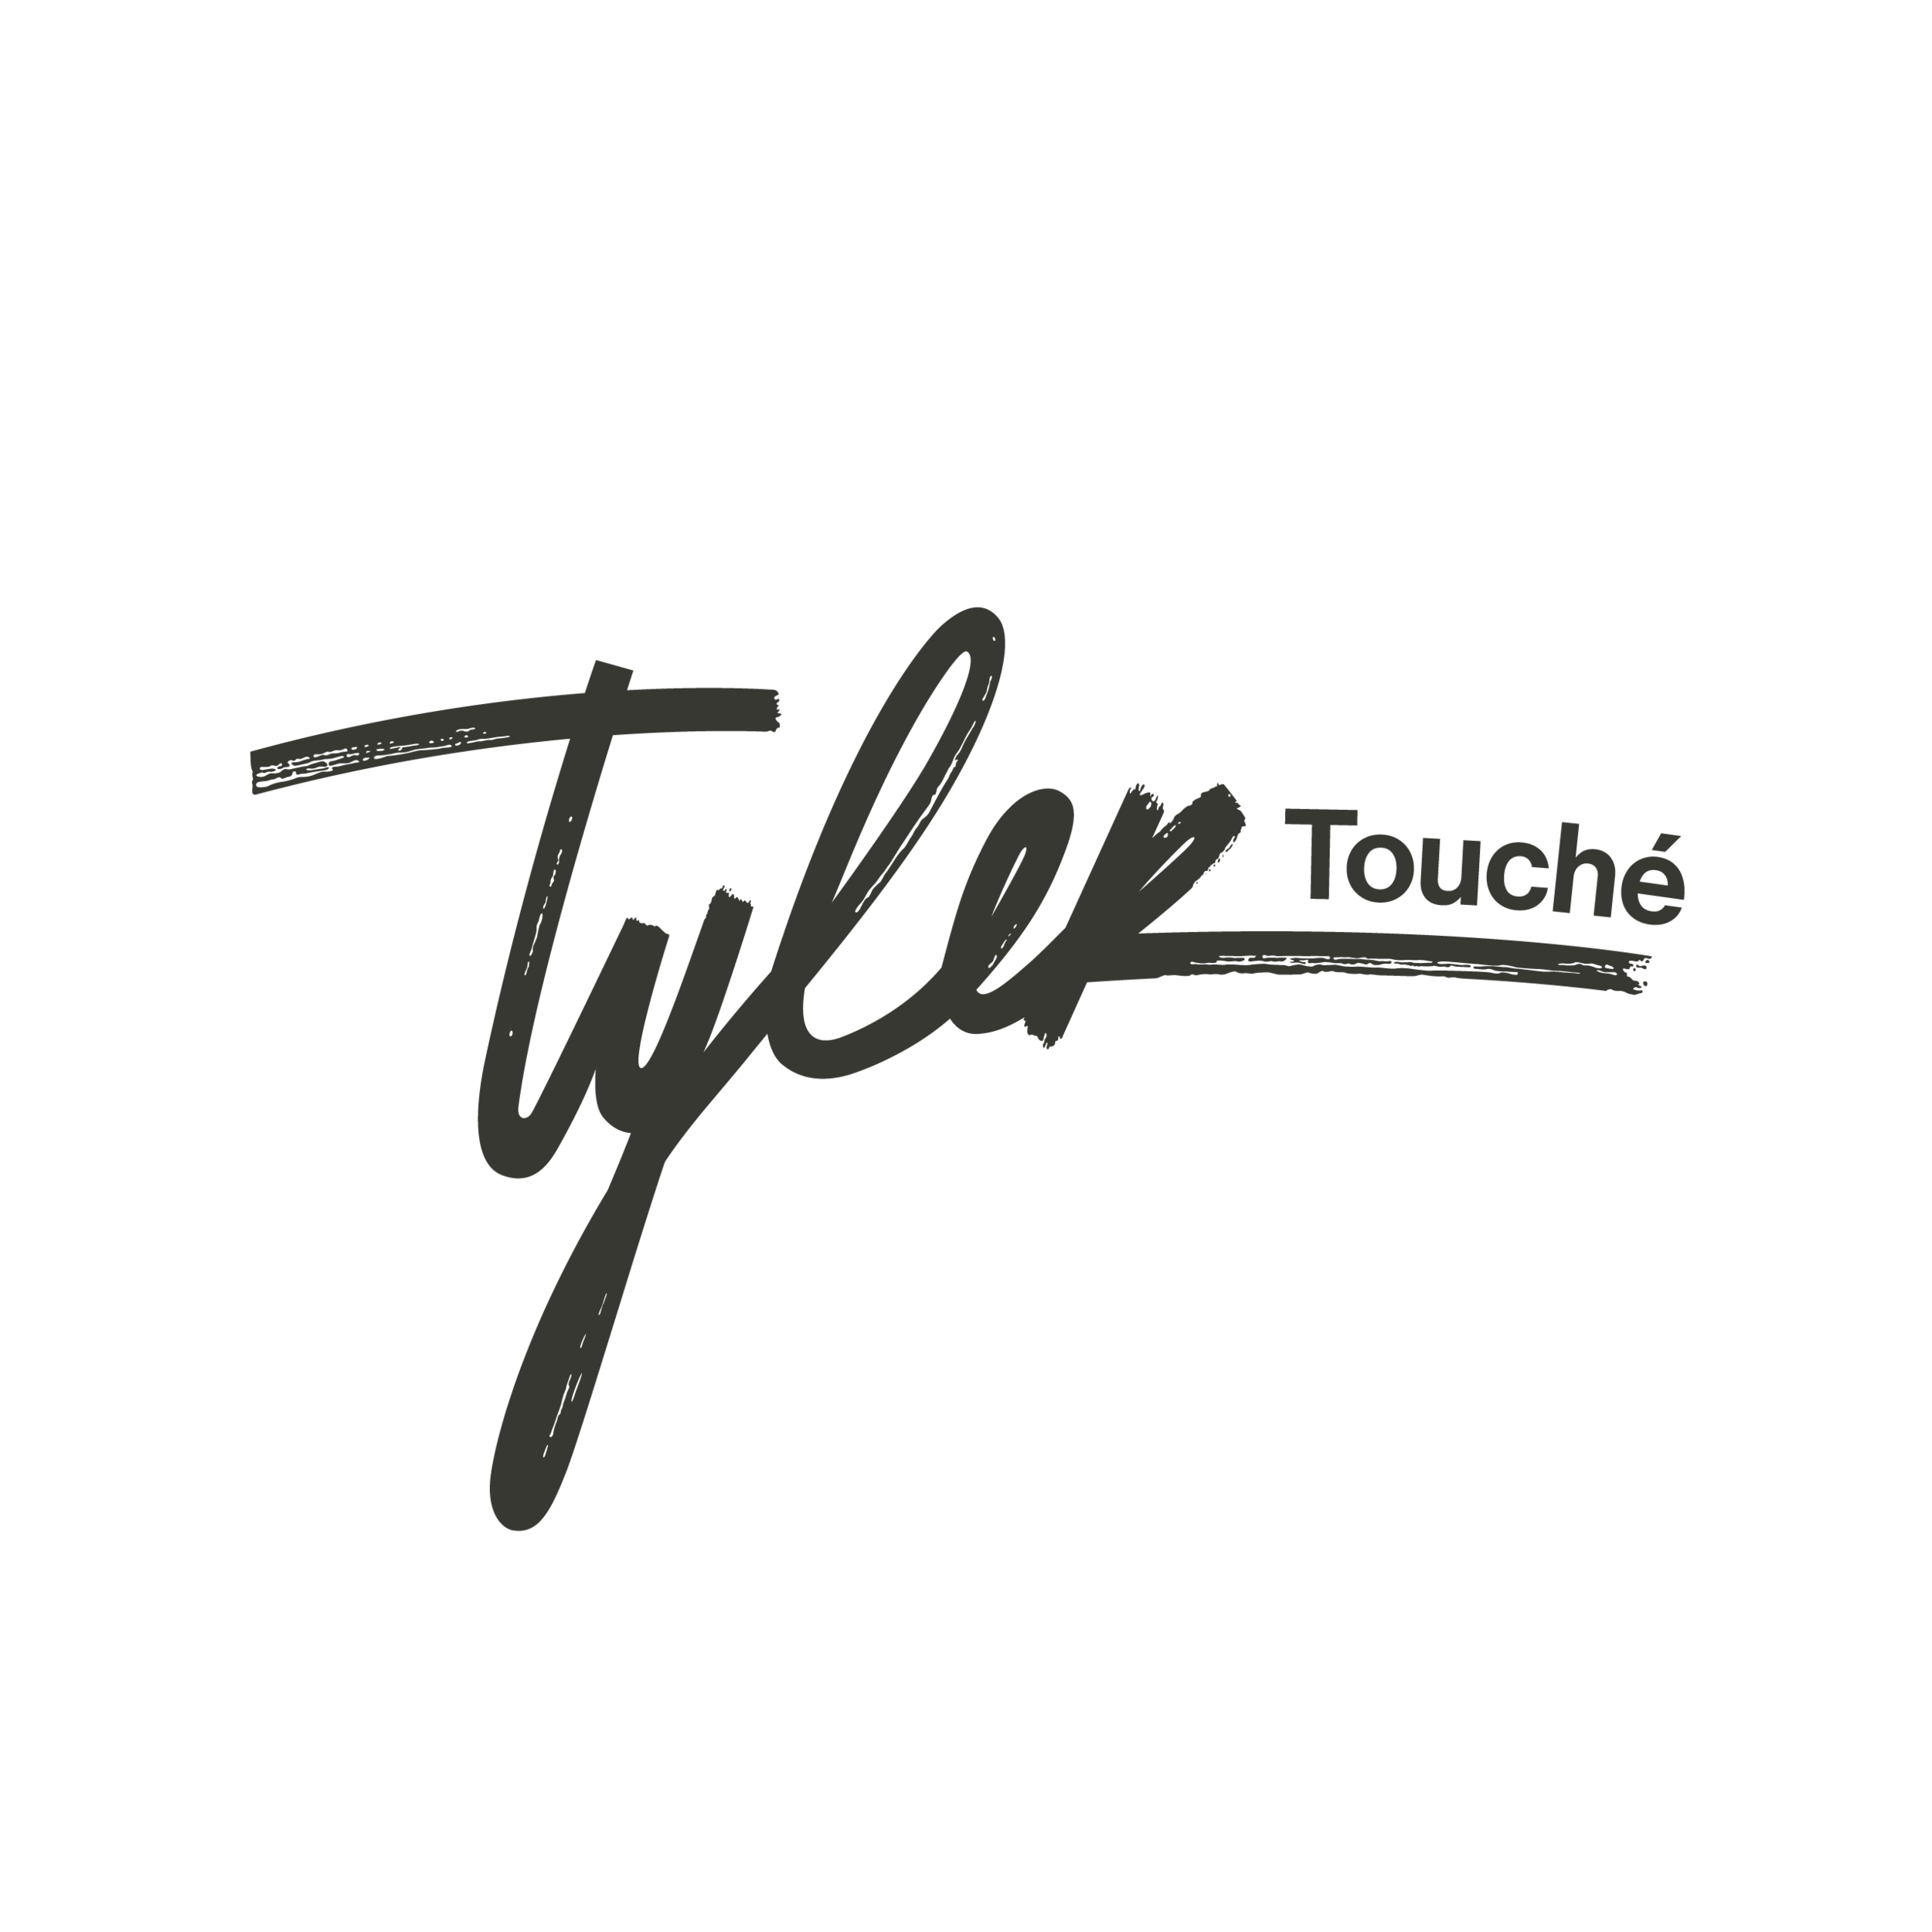 TylerTouche-1@2x.png